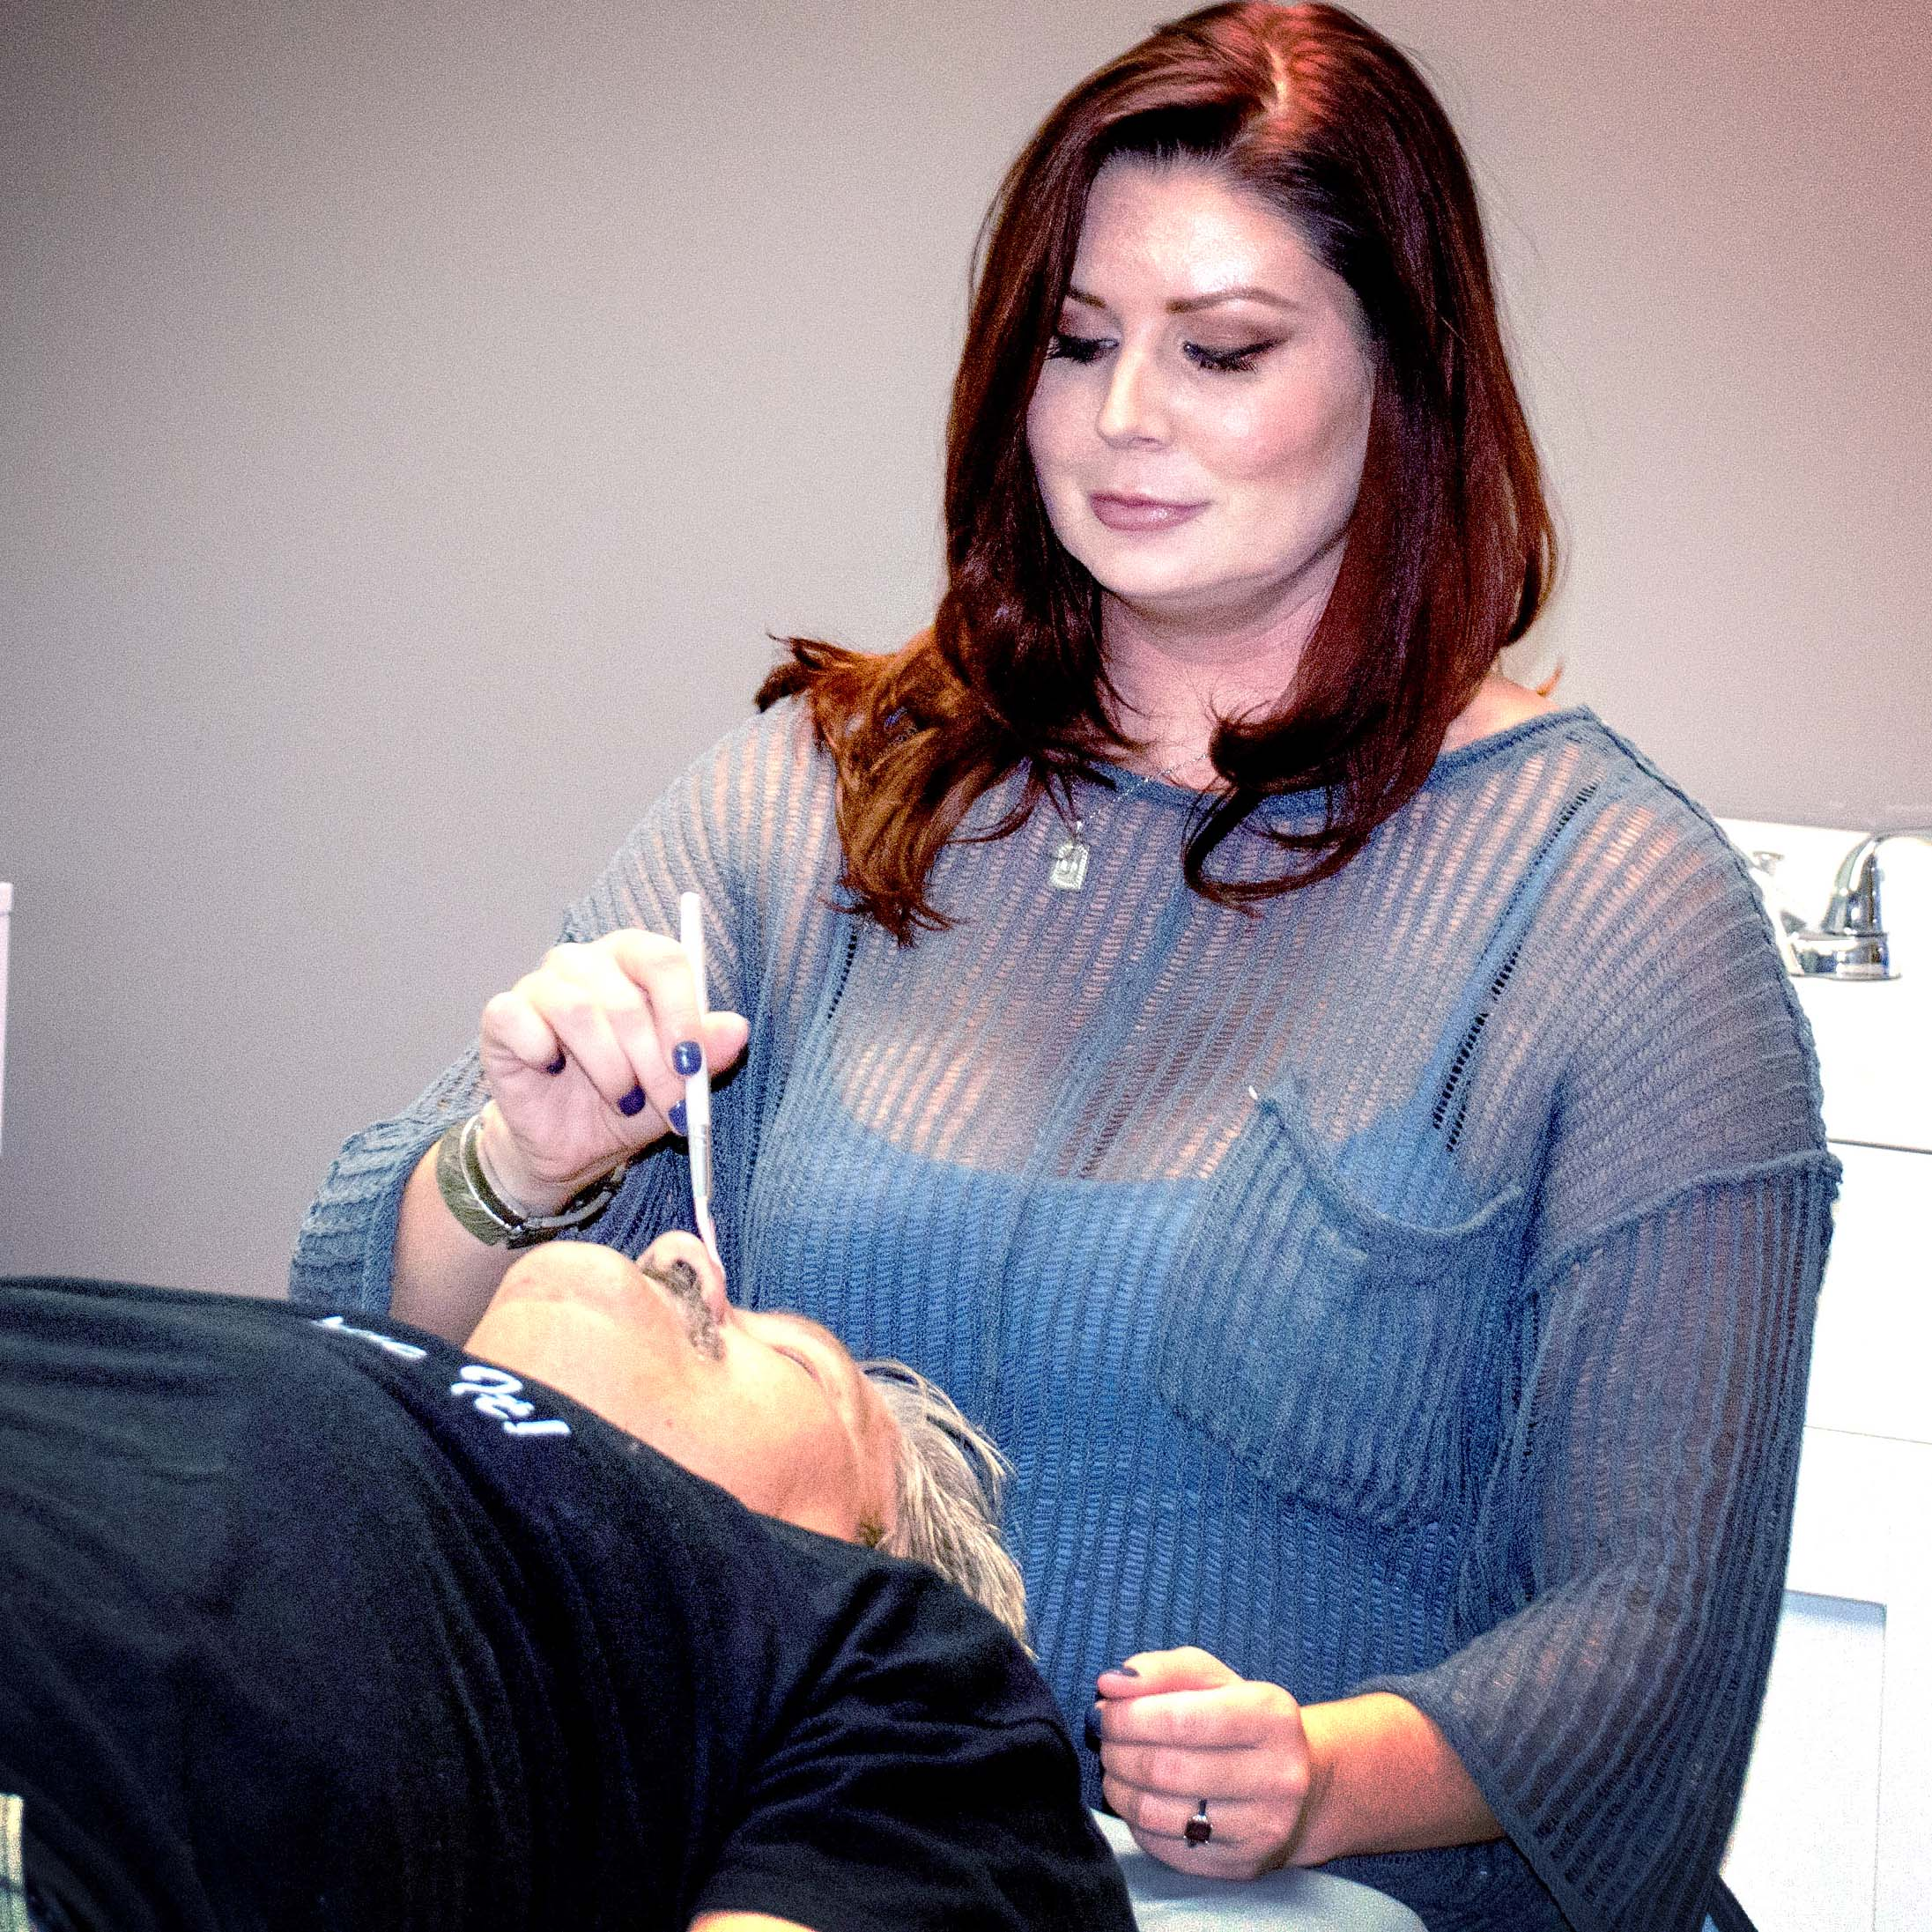 Hillsboro resident Dani Klein practices with the Texas Glory Futures team at a softball camp.